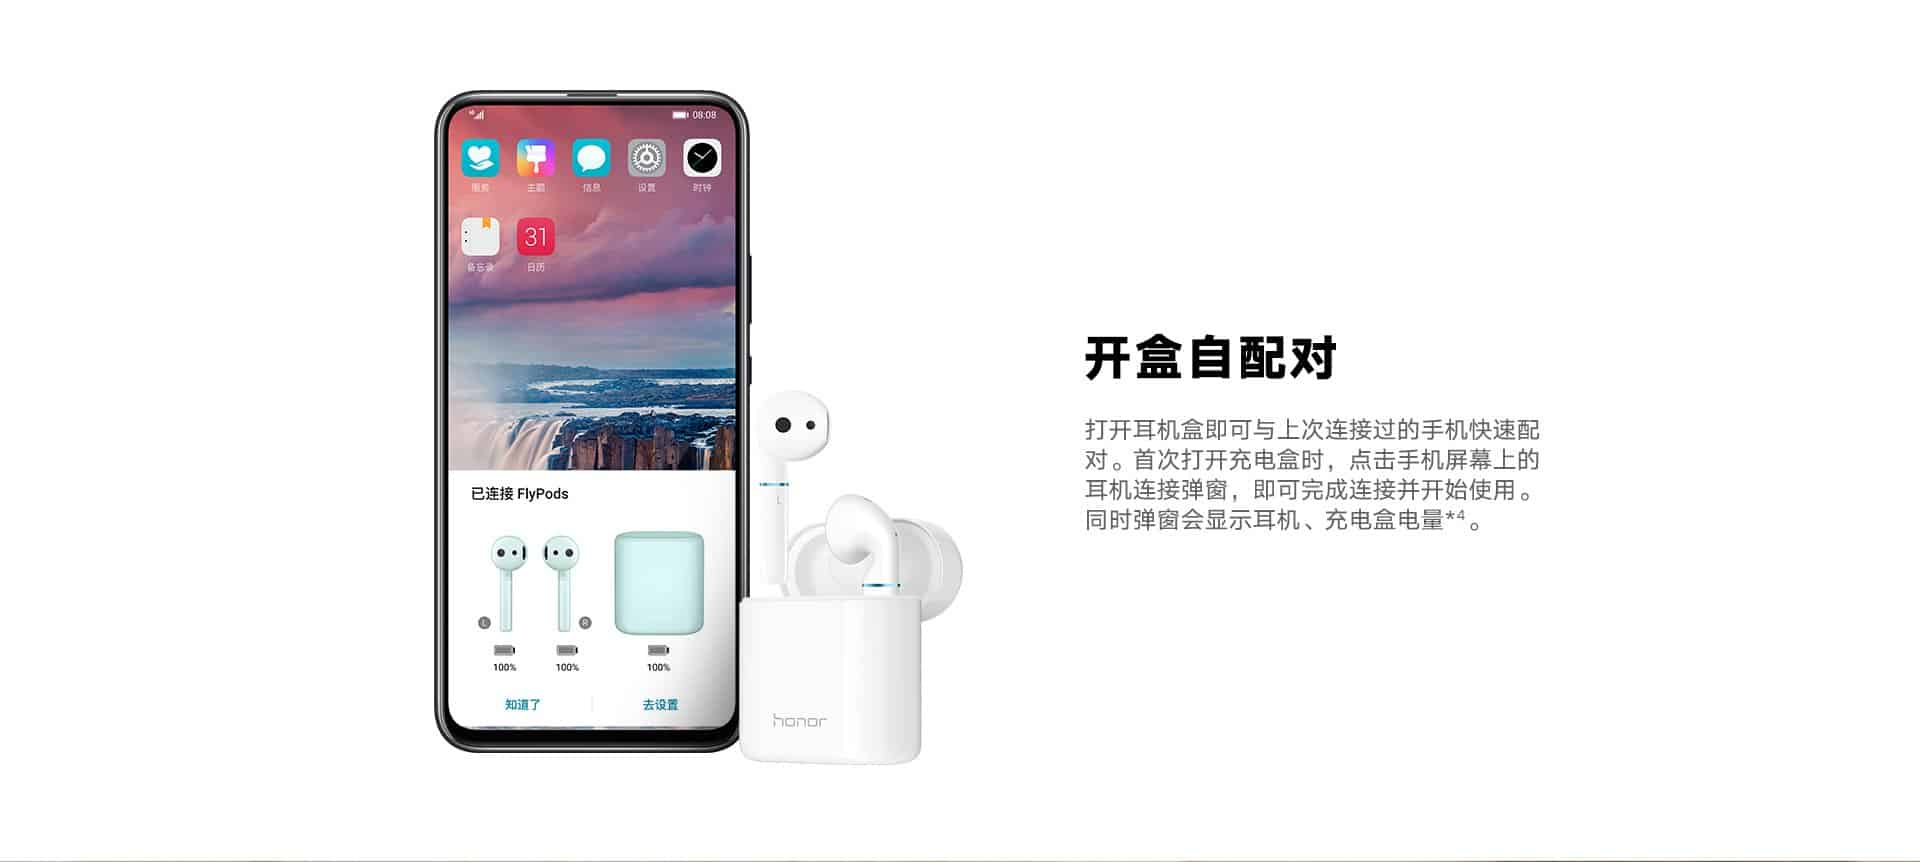 The honor flypods/flypods pro is the huawei freebuds 2 pro that didn't launch, costs ¥799 (~4)